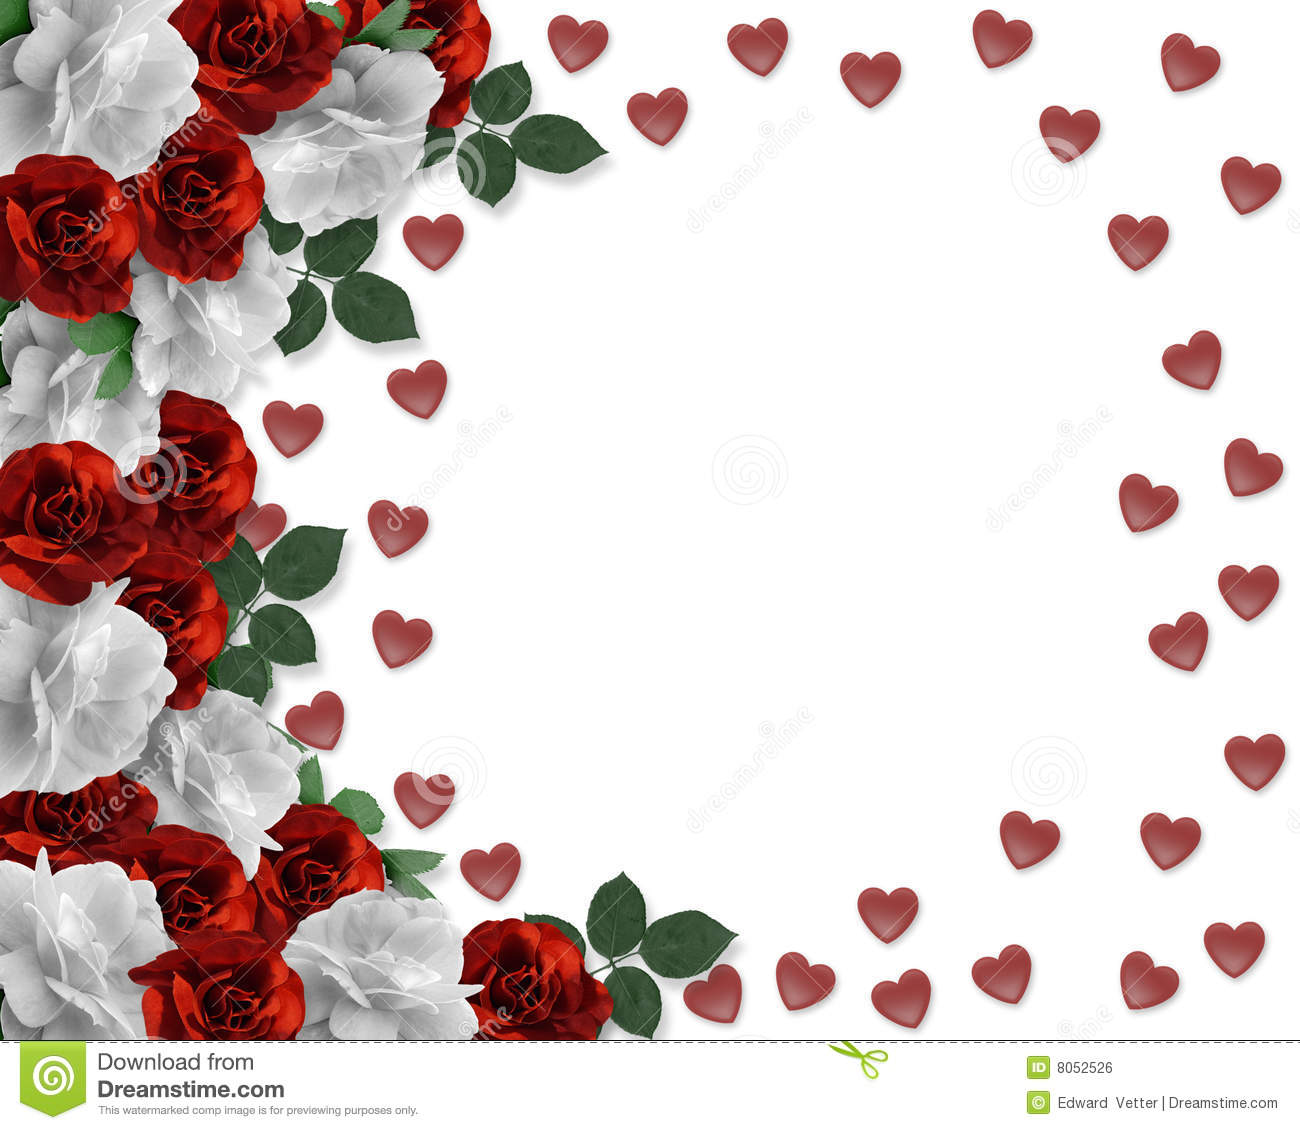 Valentine Red And White Roses Border Royalty Free Stock Image - Image ...